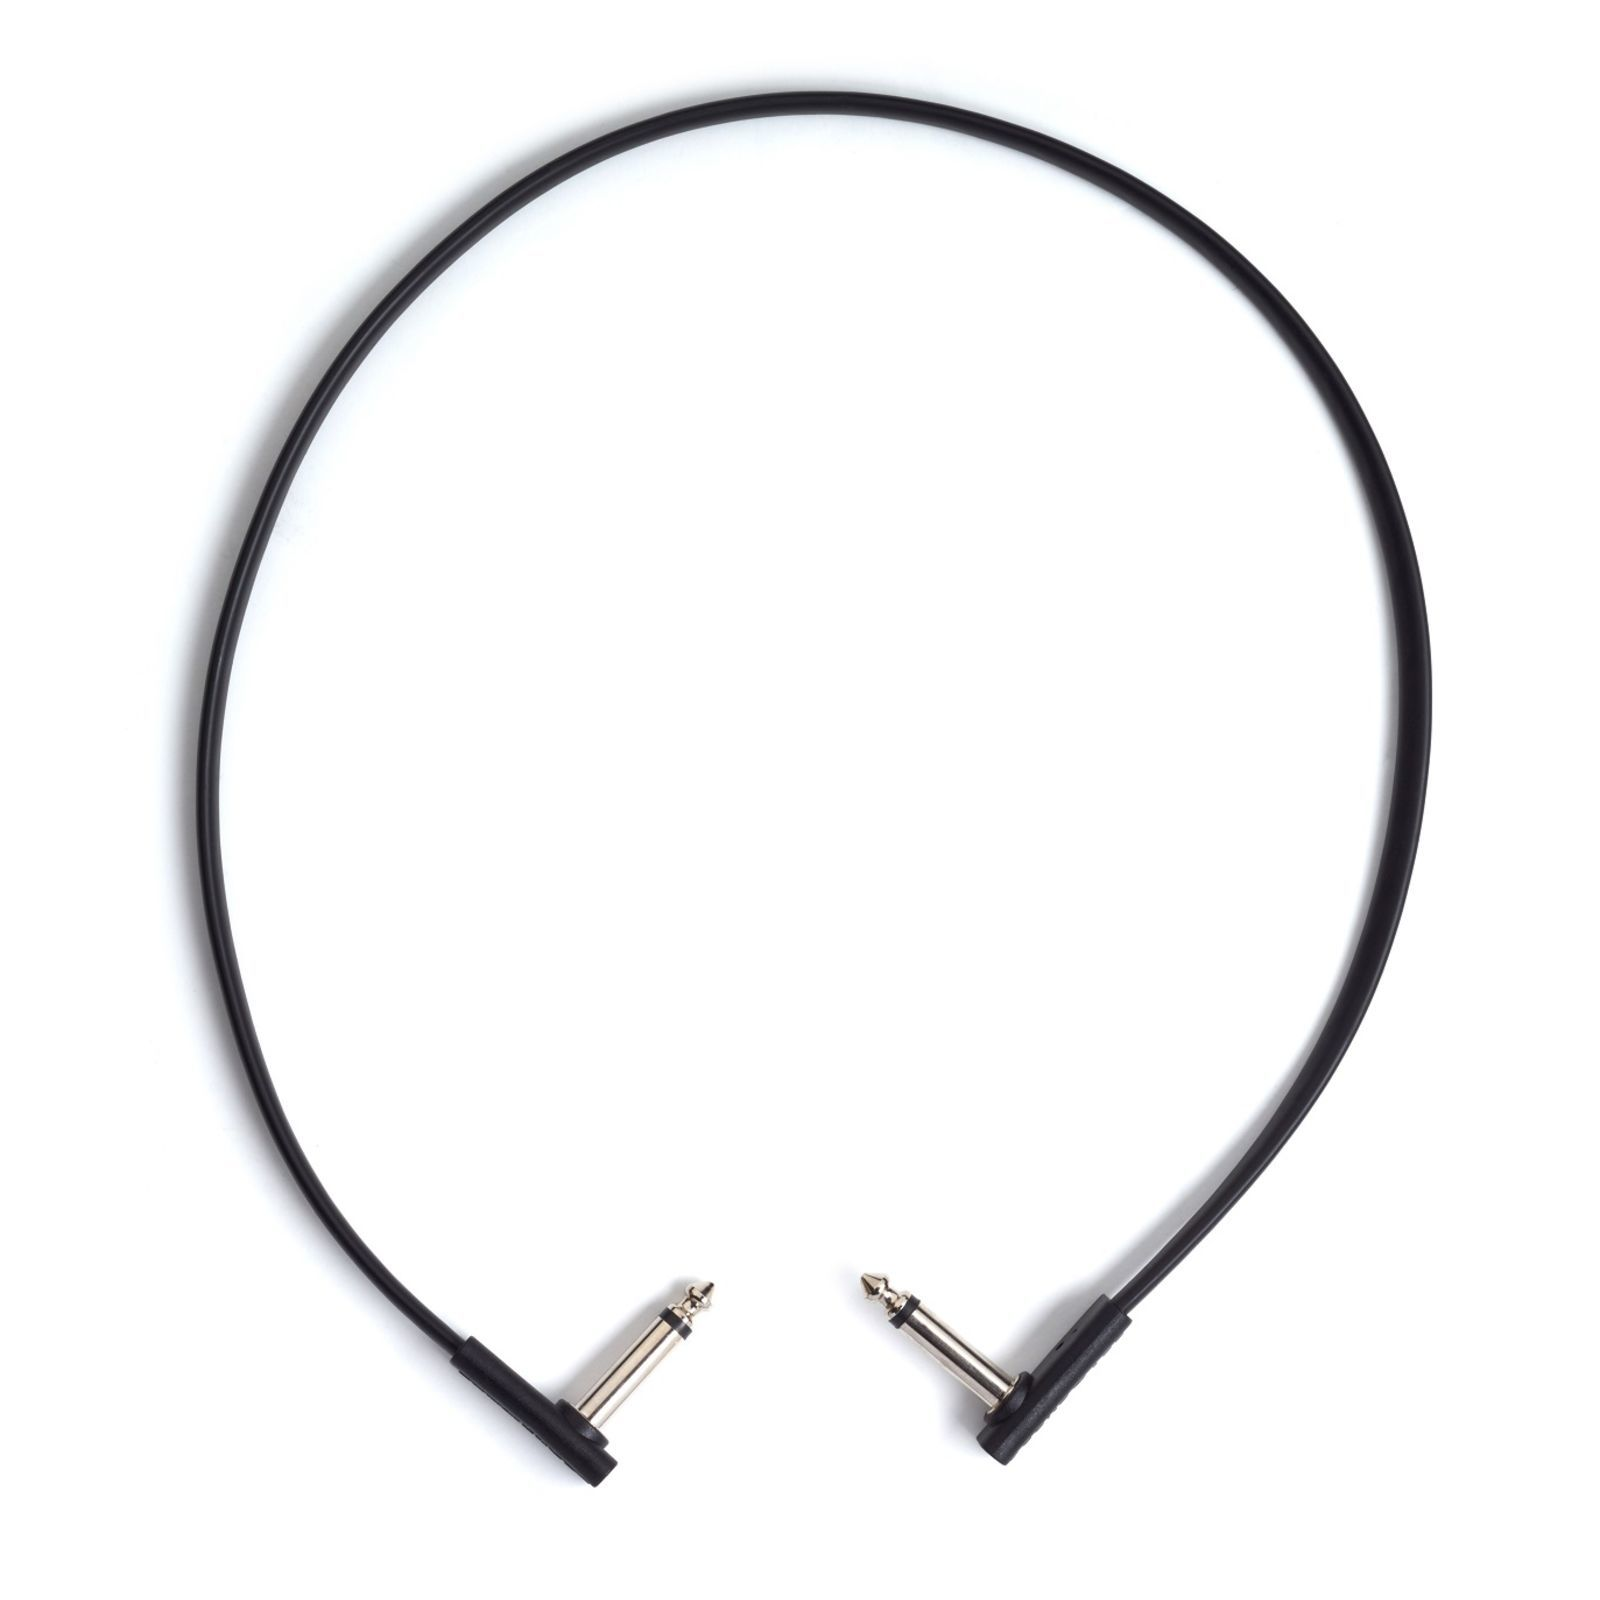 Rockboard Flat Patch Cable 60 cm Black Изображение товара